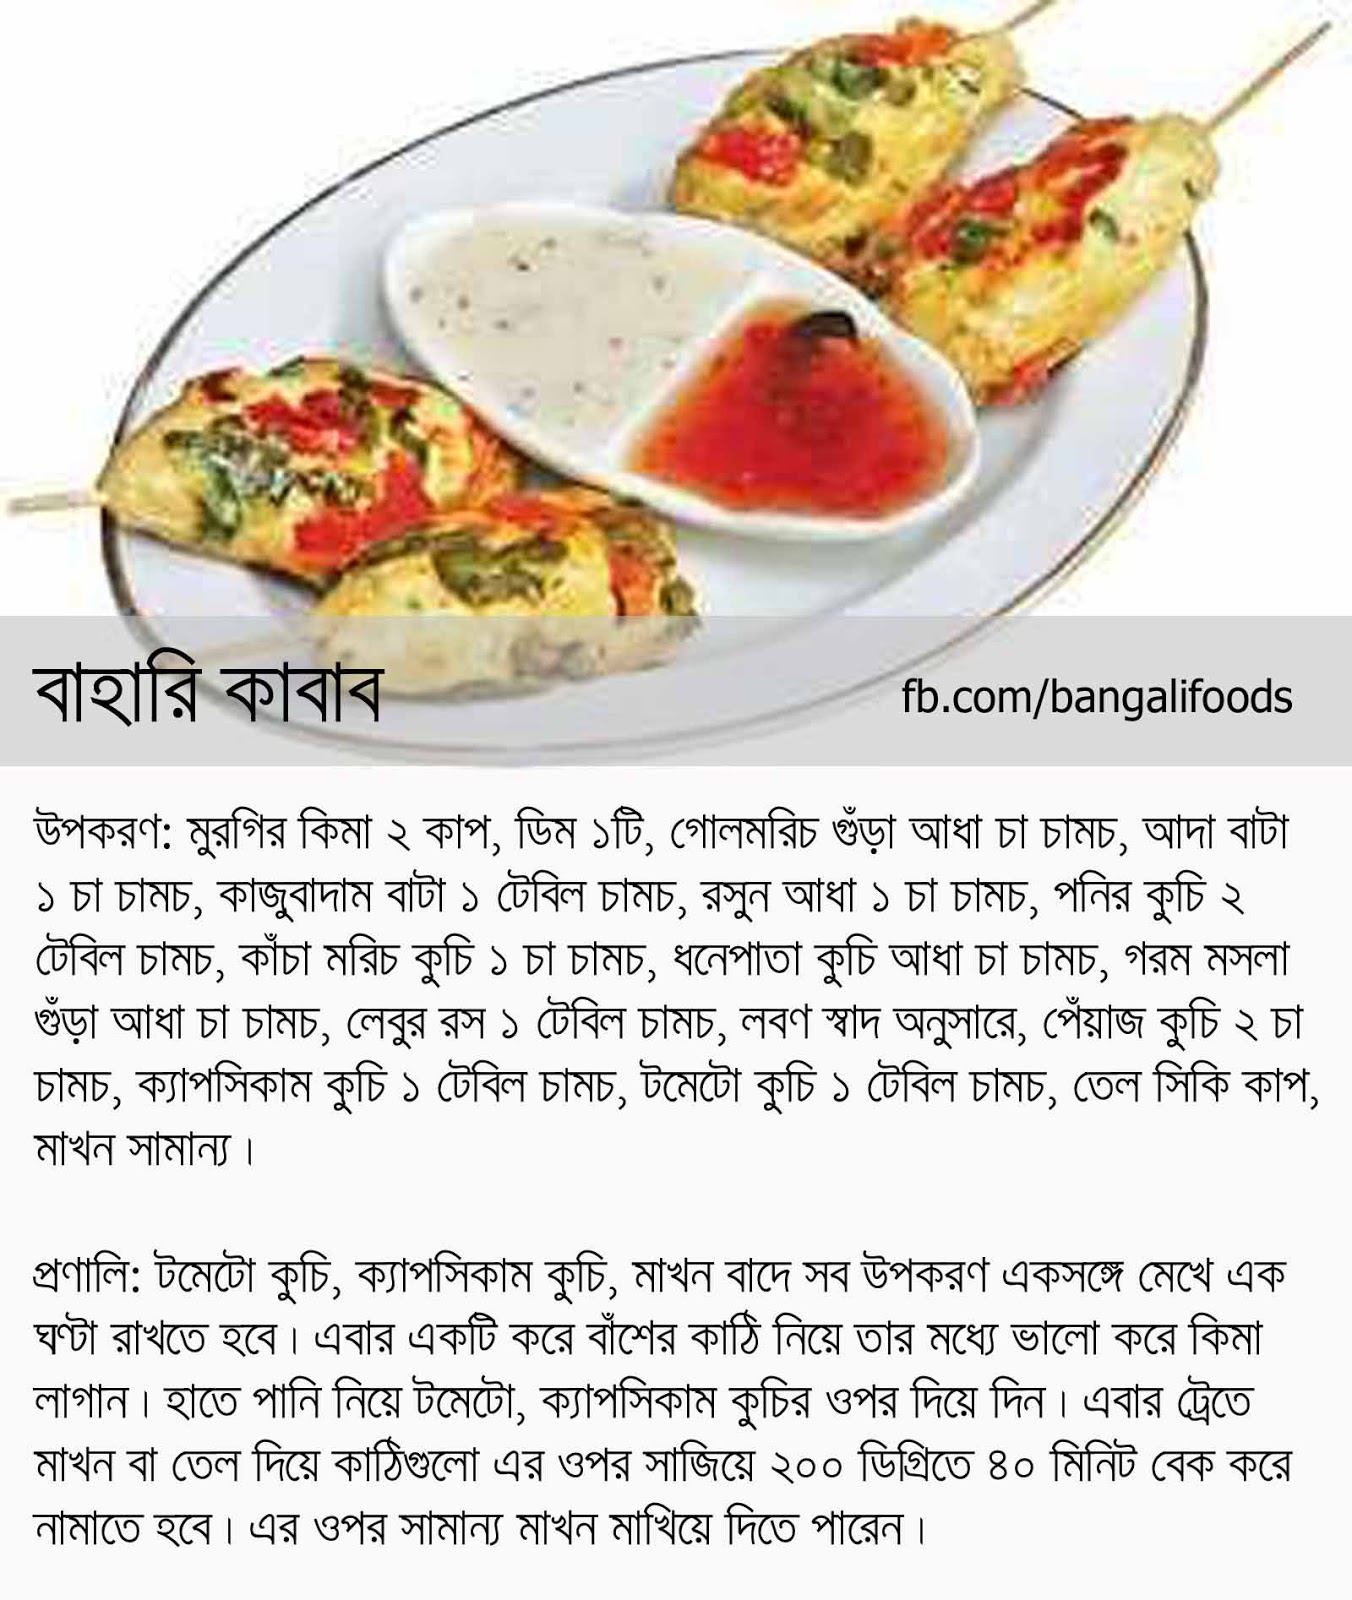 Bangali foods bahari kabab recipe in bangla font bahari kabab recipe in bangla font forumfinder